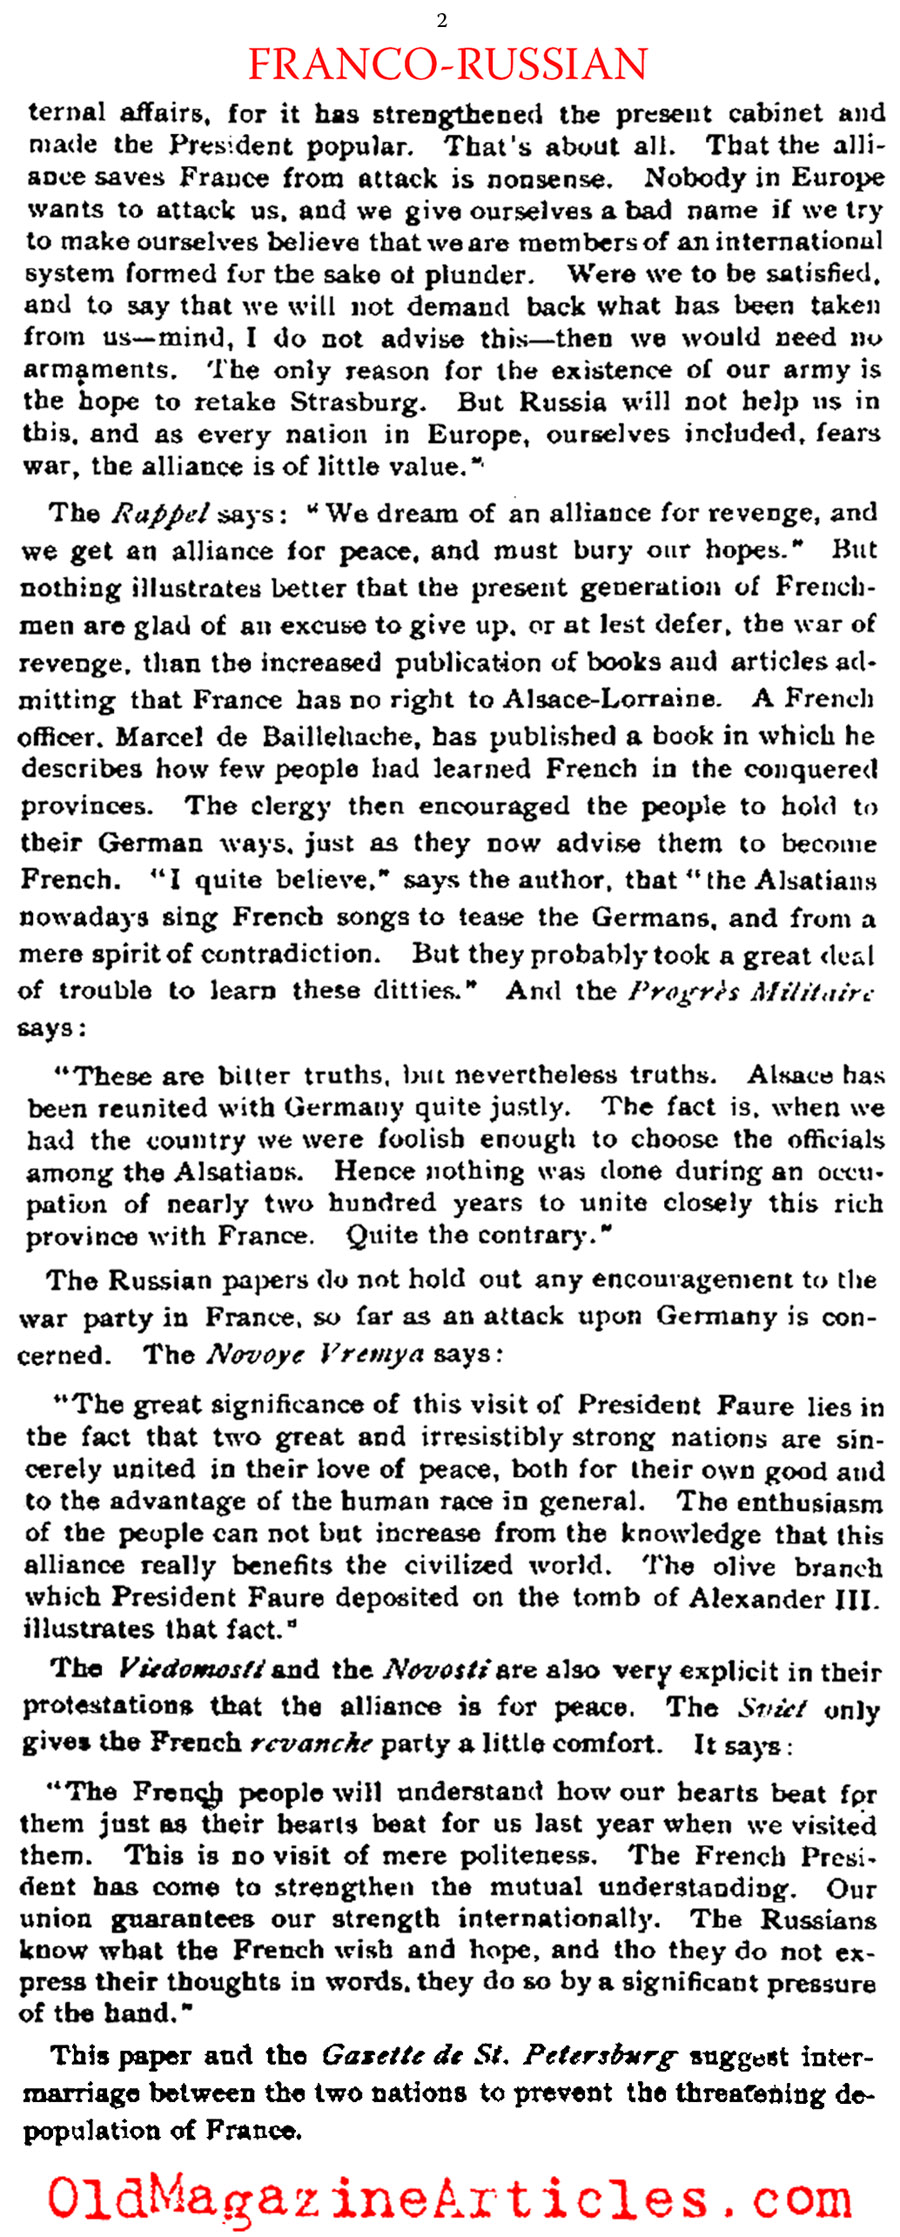 The Franco-Russian Alliance (Literary Digest, 1897)